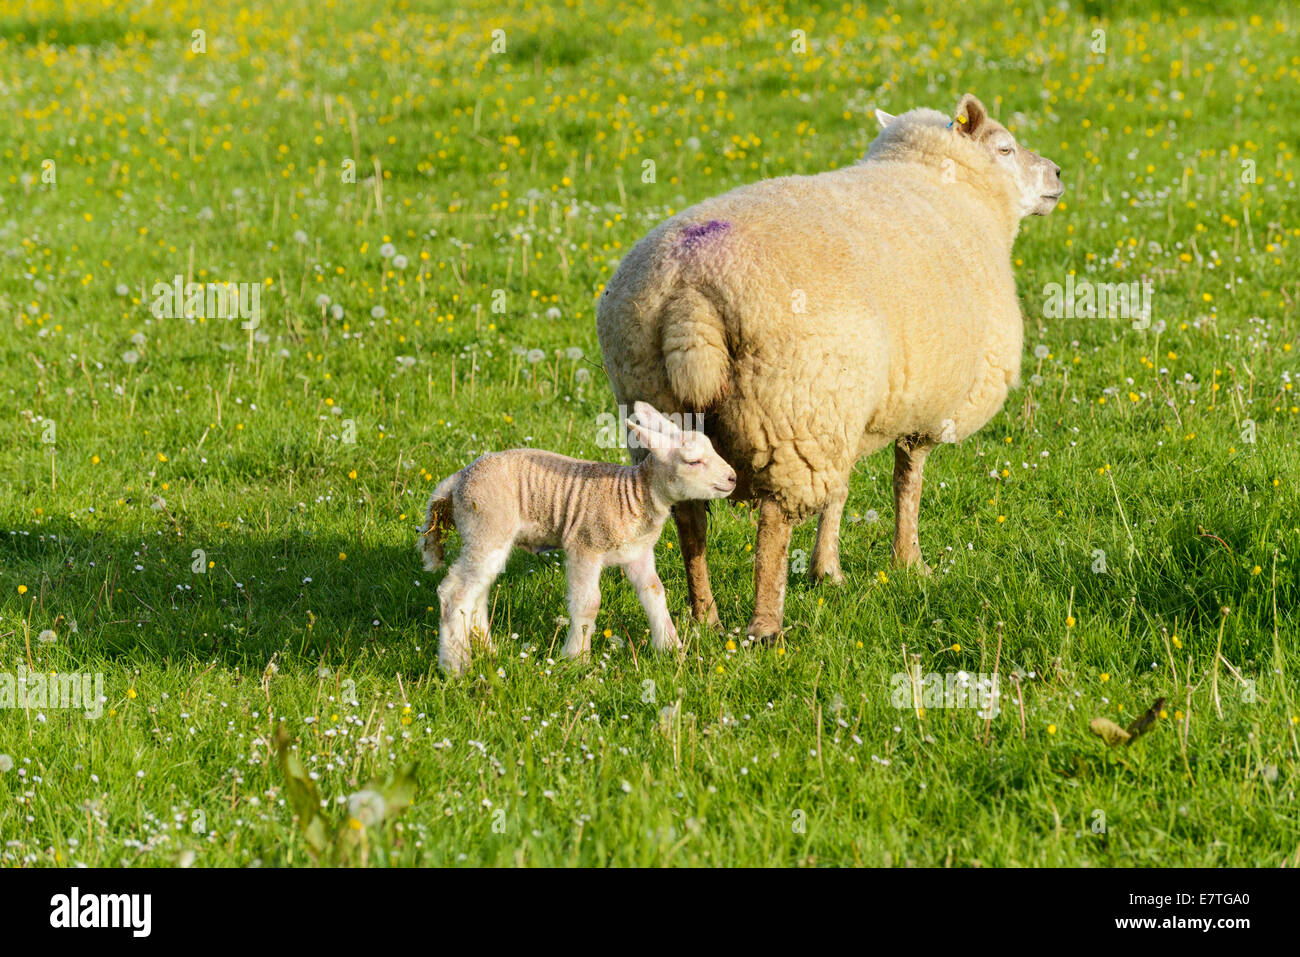 Ewe with new born lamb in field - Stock Image